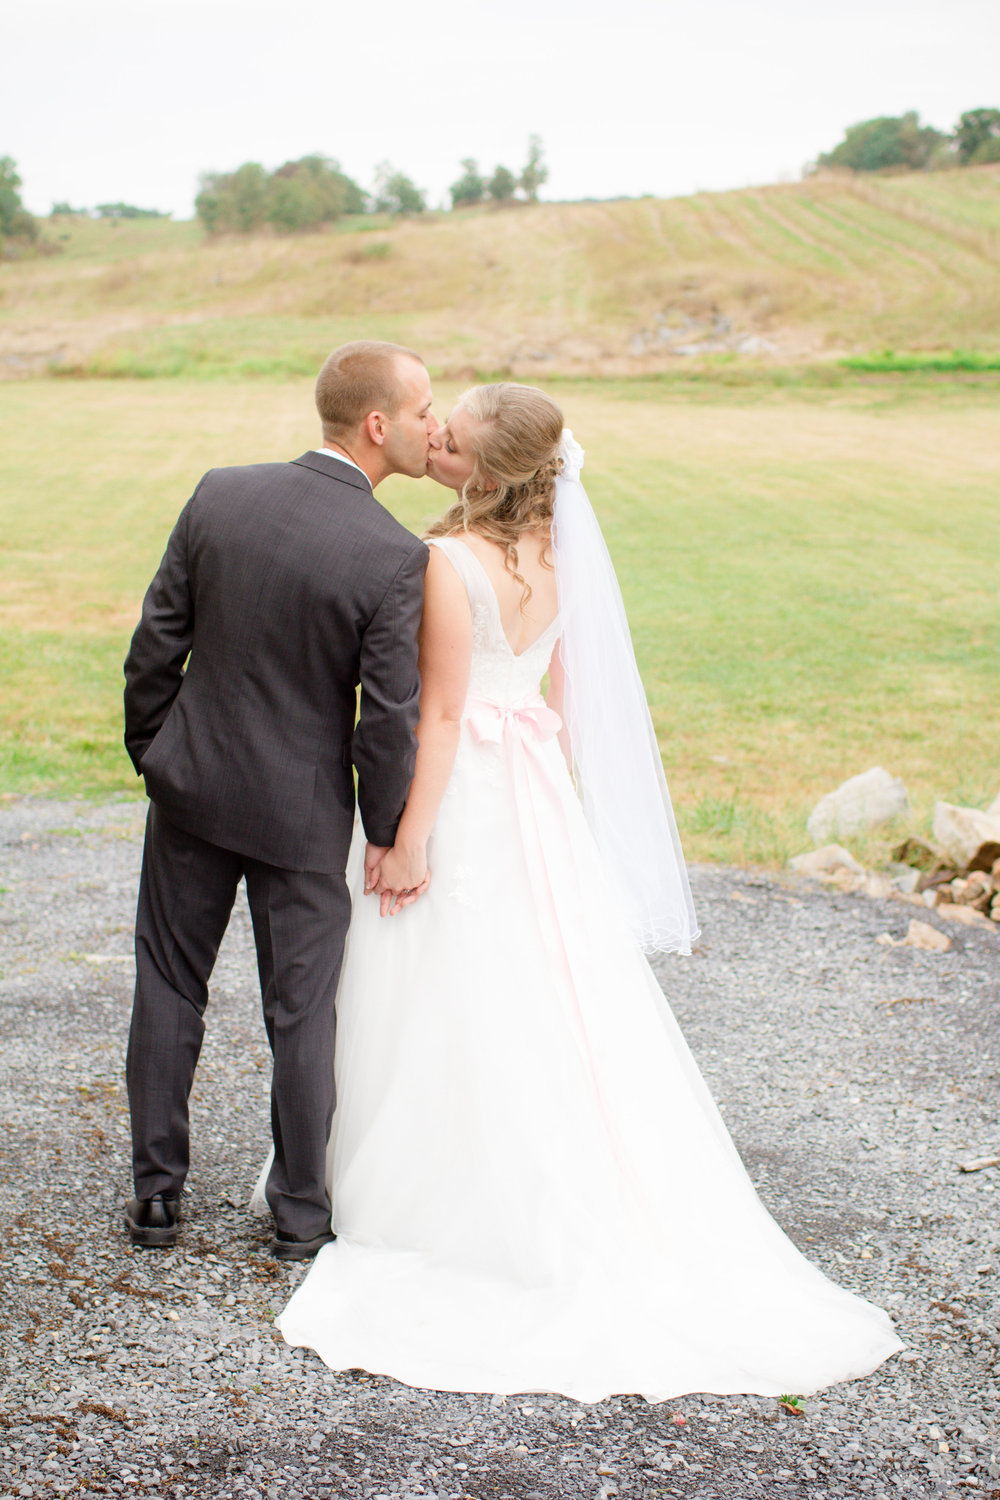 South Carolina wedding photographer | Lorin Marie Photography